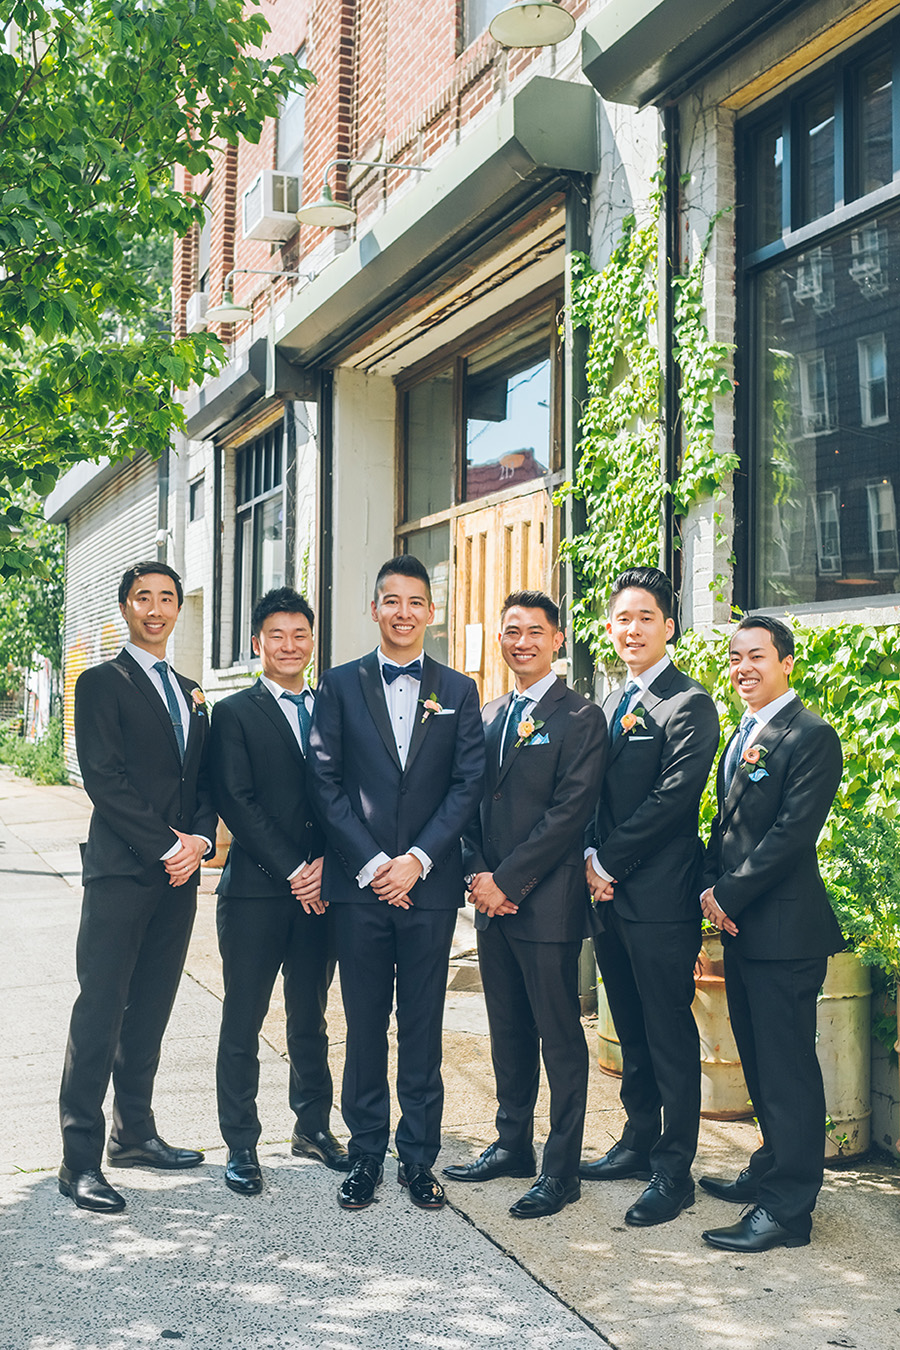 TINA-CARSON-BROOKLYN-WINERY-NYC-BRIDALPARTY-CYNTHIACHUNG-0122.jpg